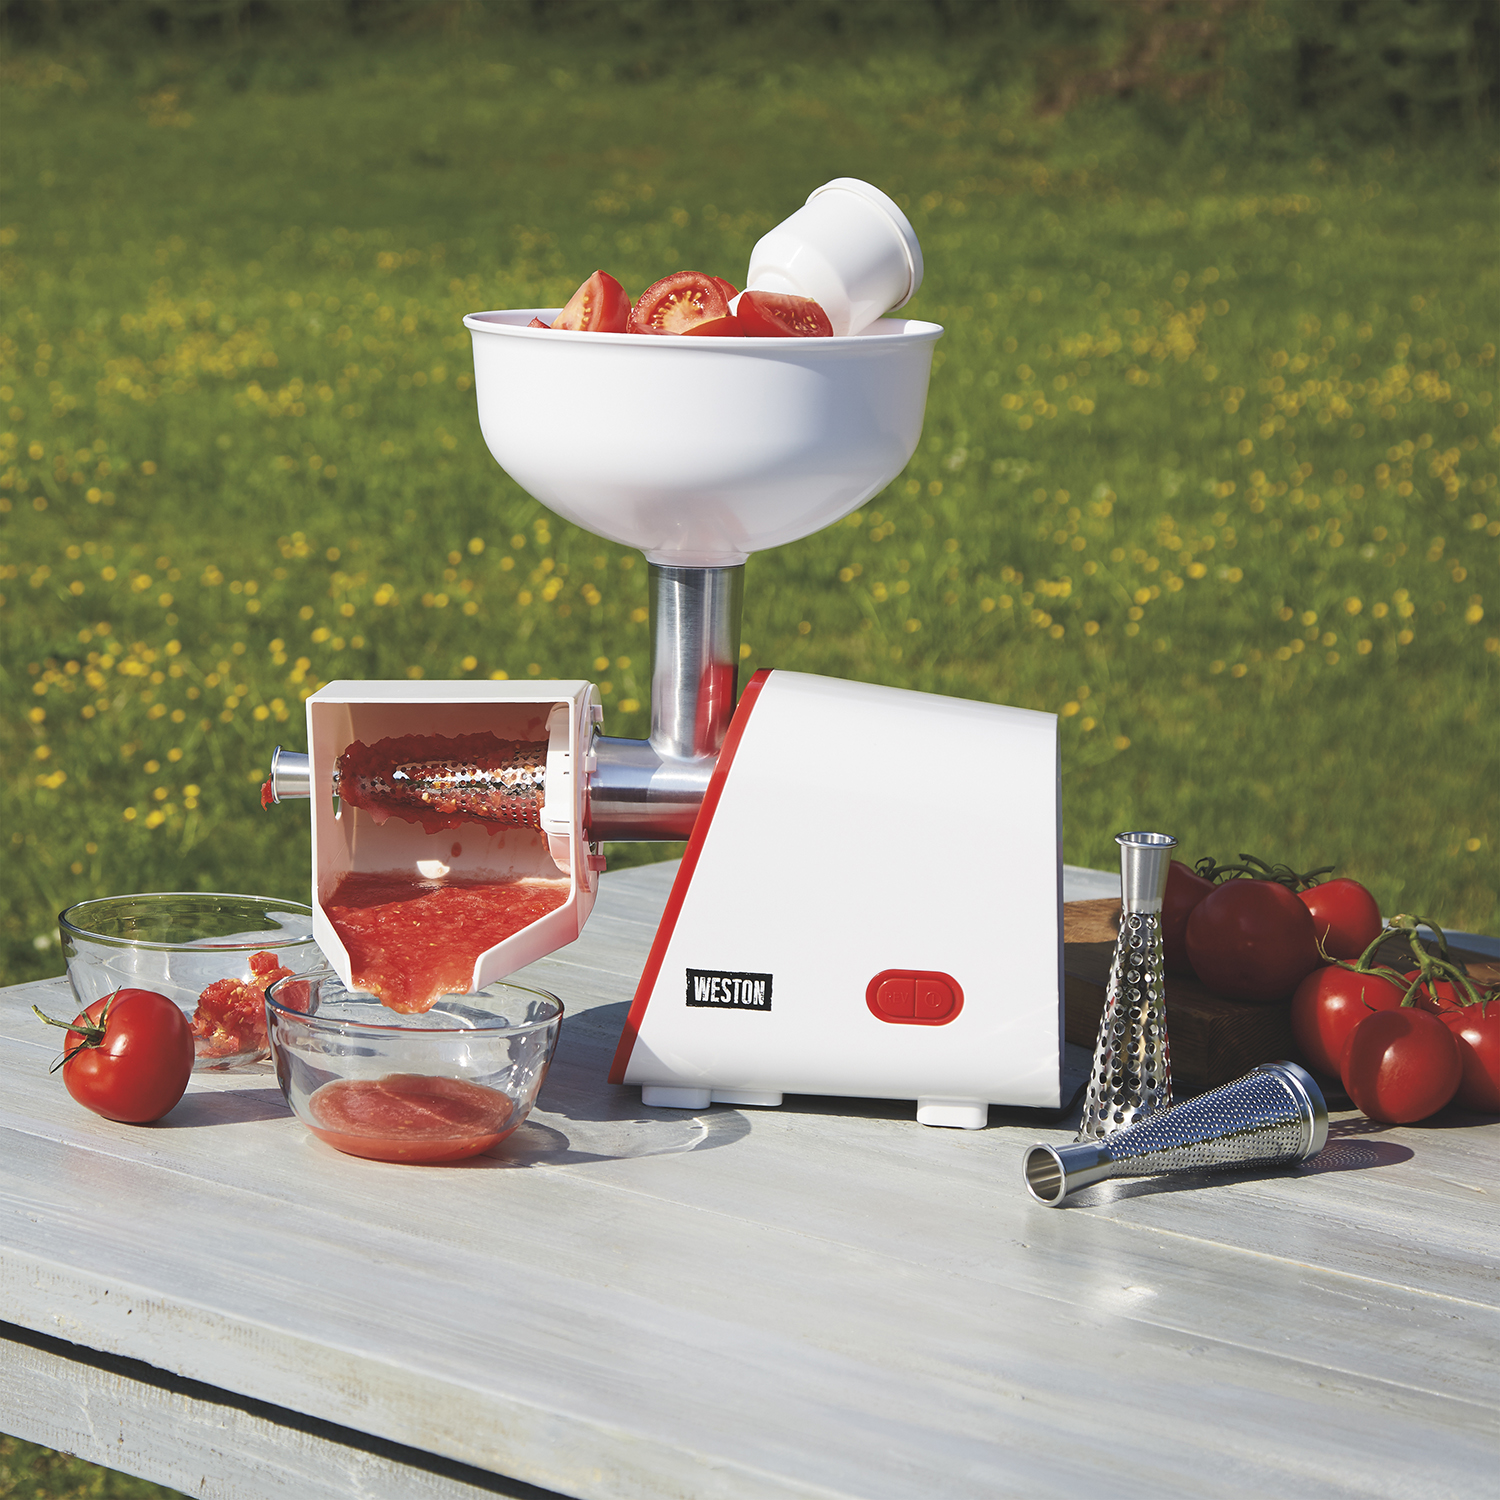 Weston Deluxe Electric Tomato Strainer